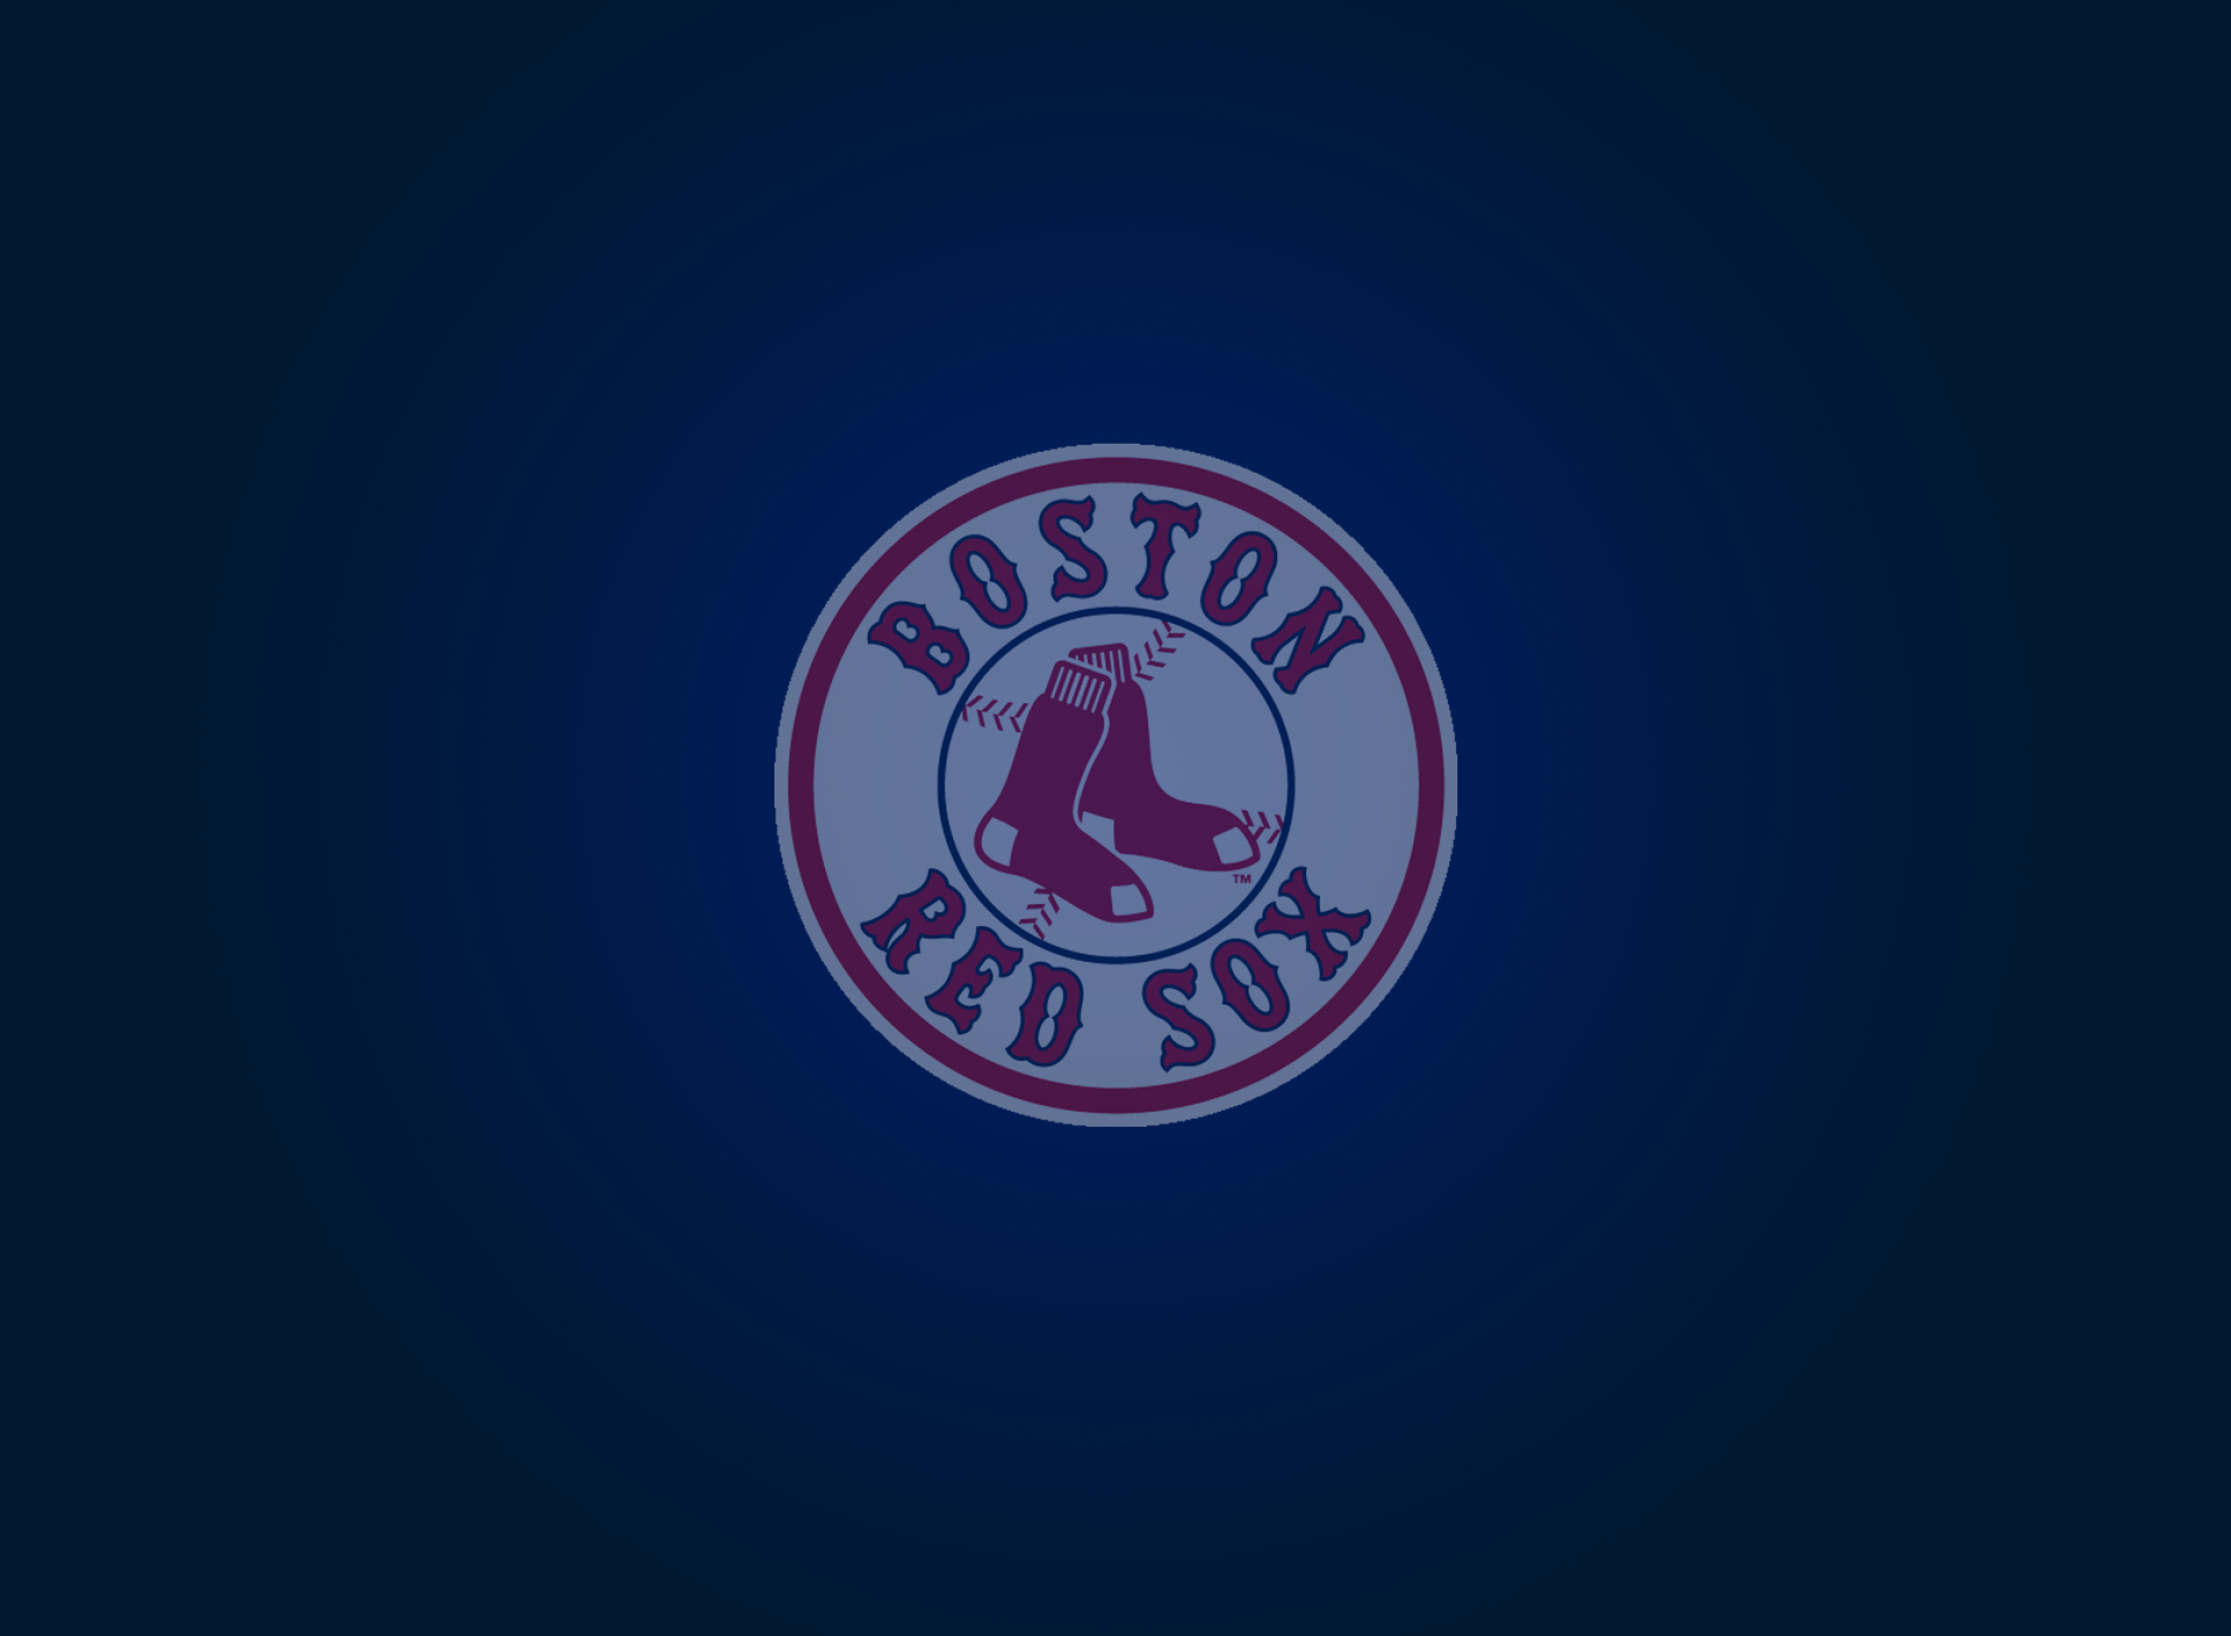 Boston Red Sox Iphone Wallpaper Boston red sox 2231x1636